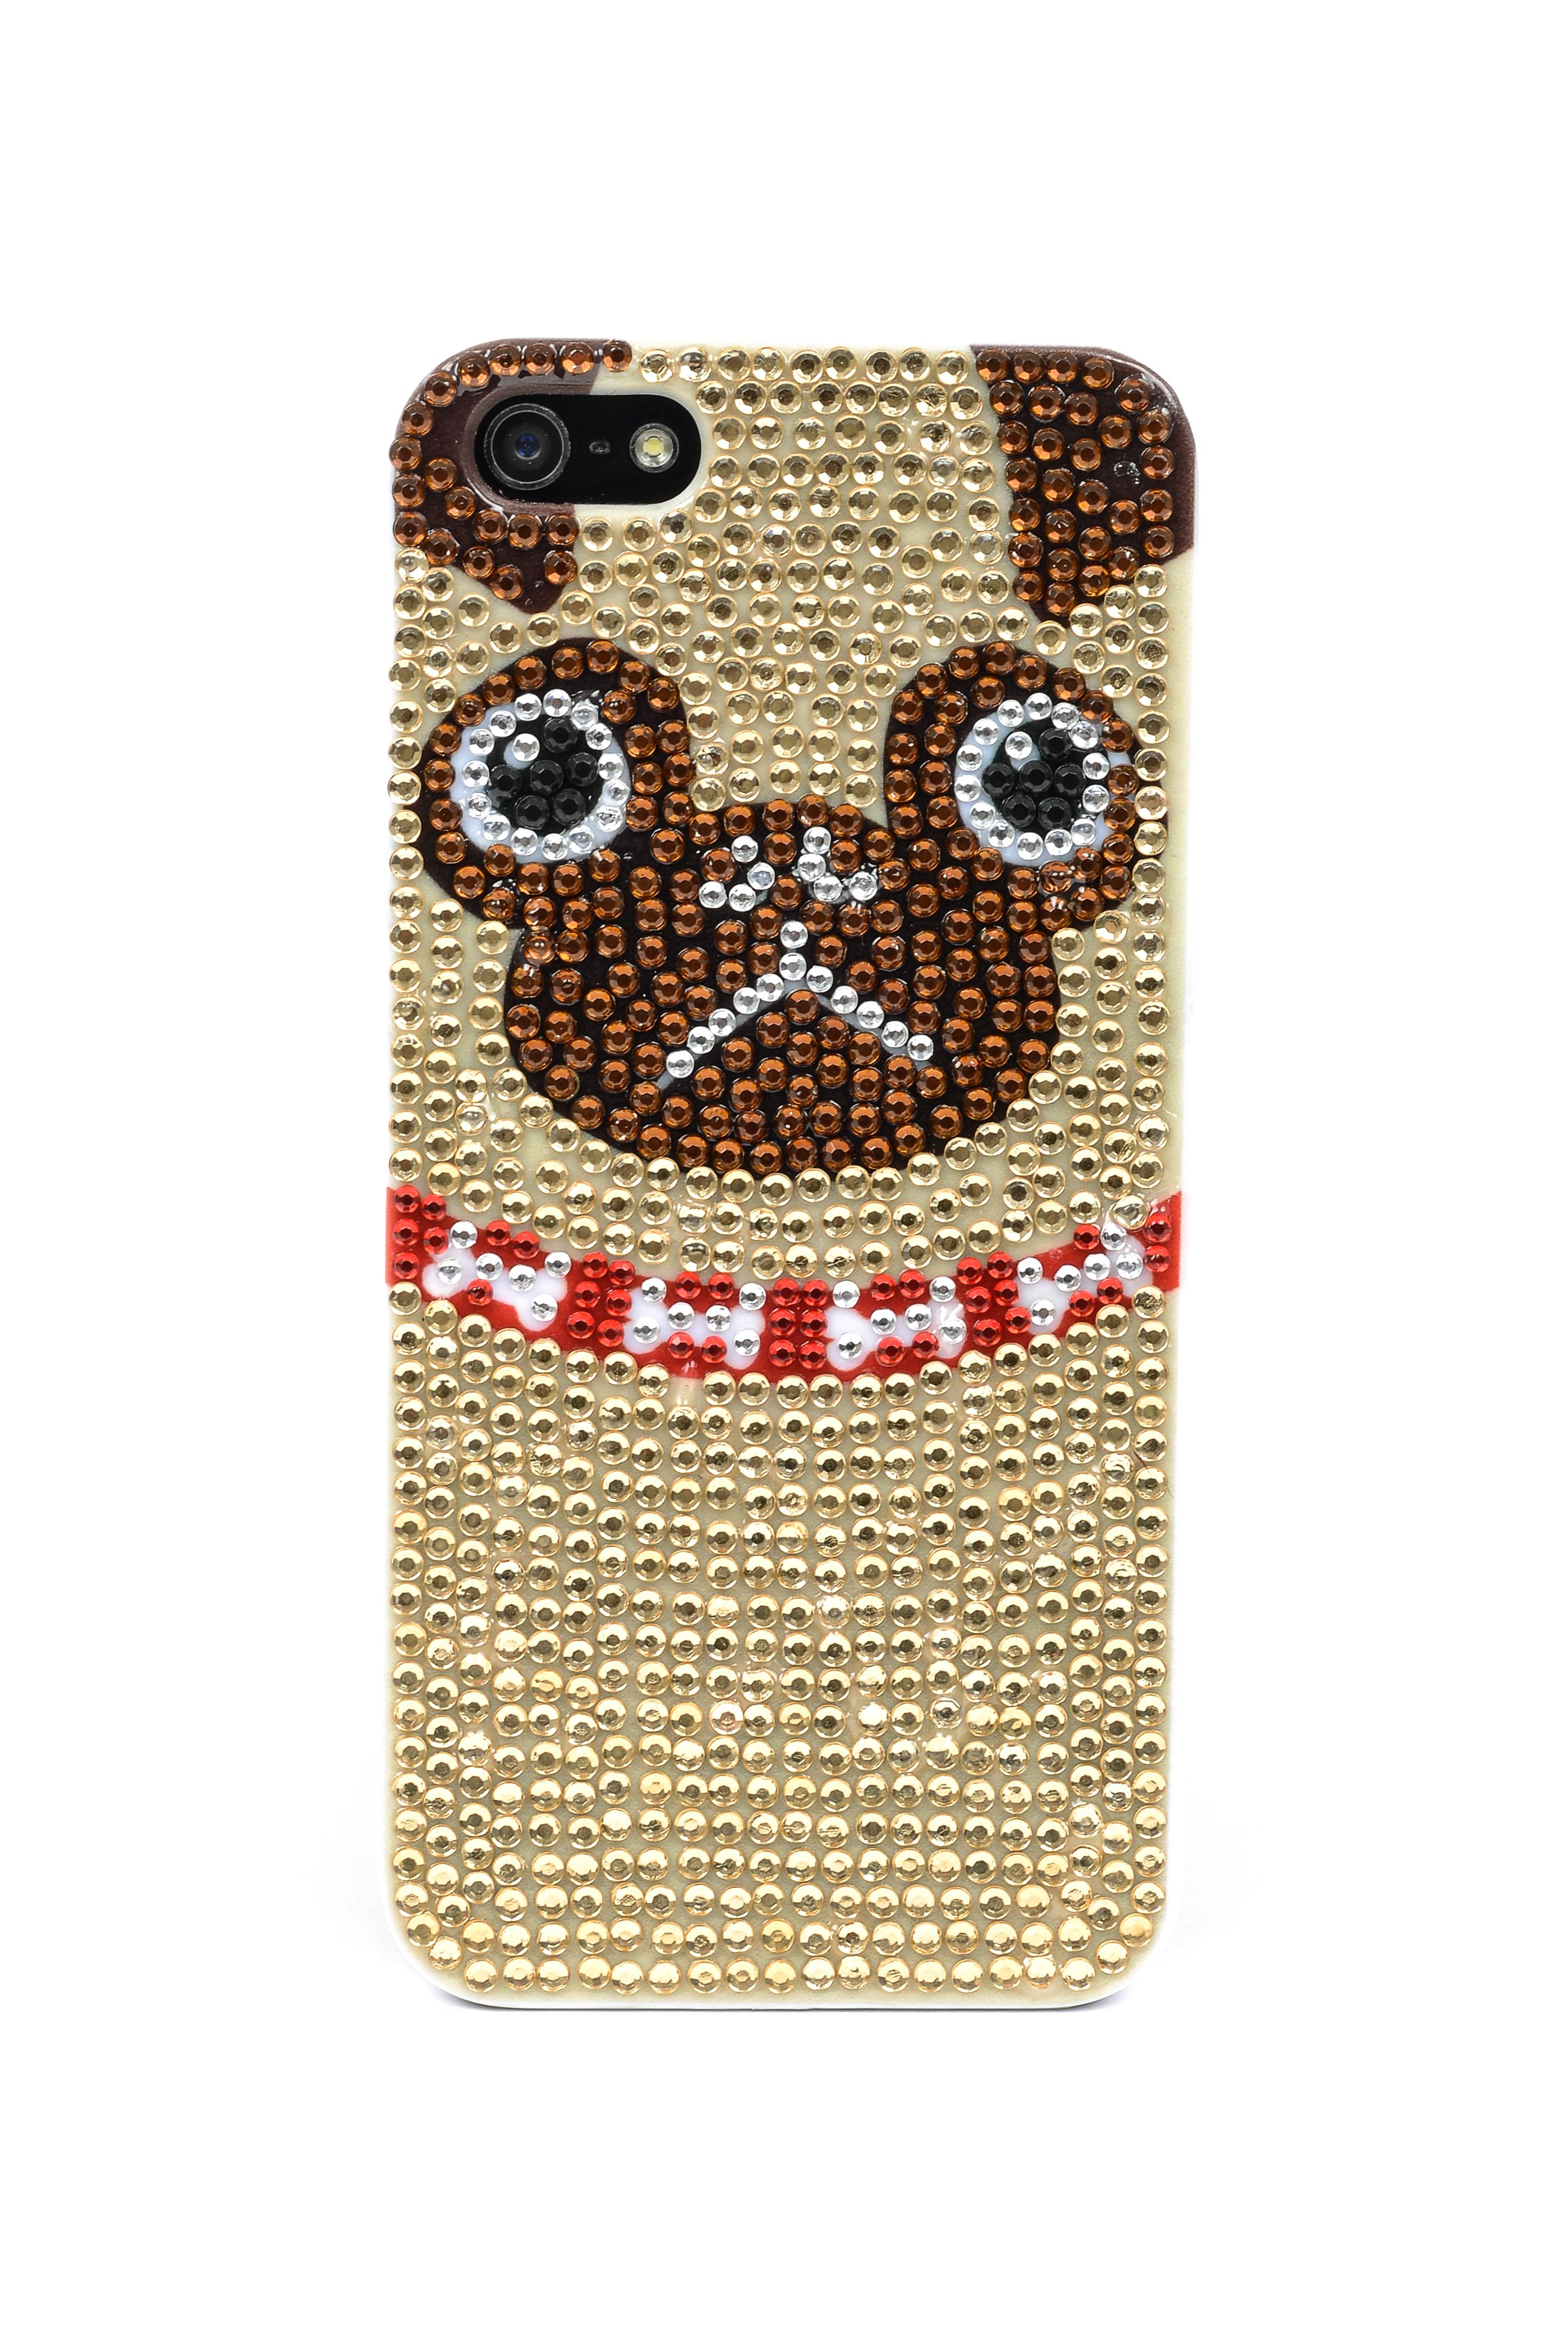 Pug iphone case 5/5S